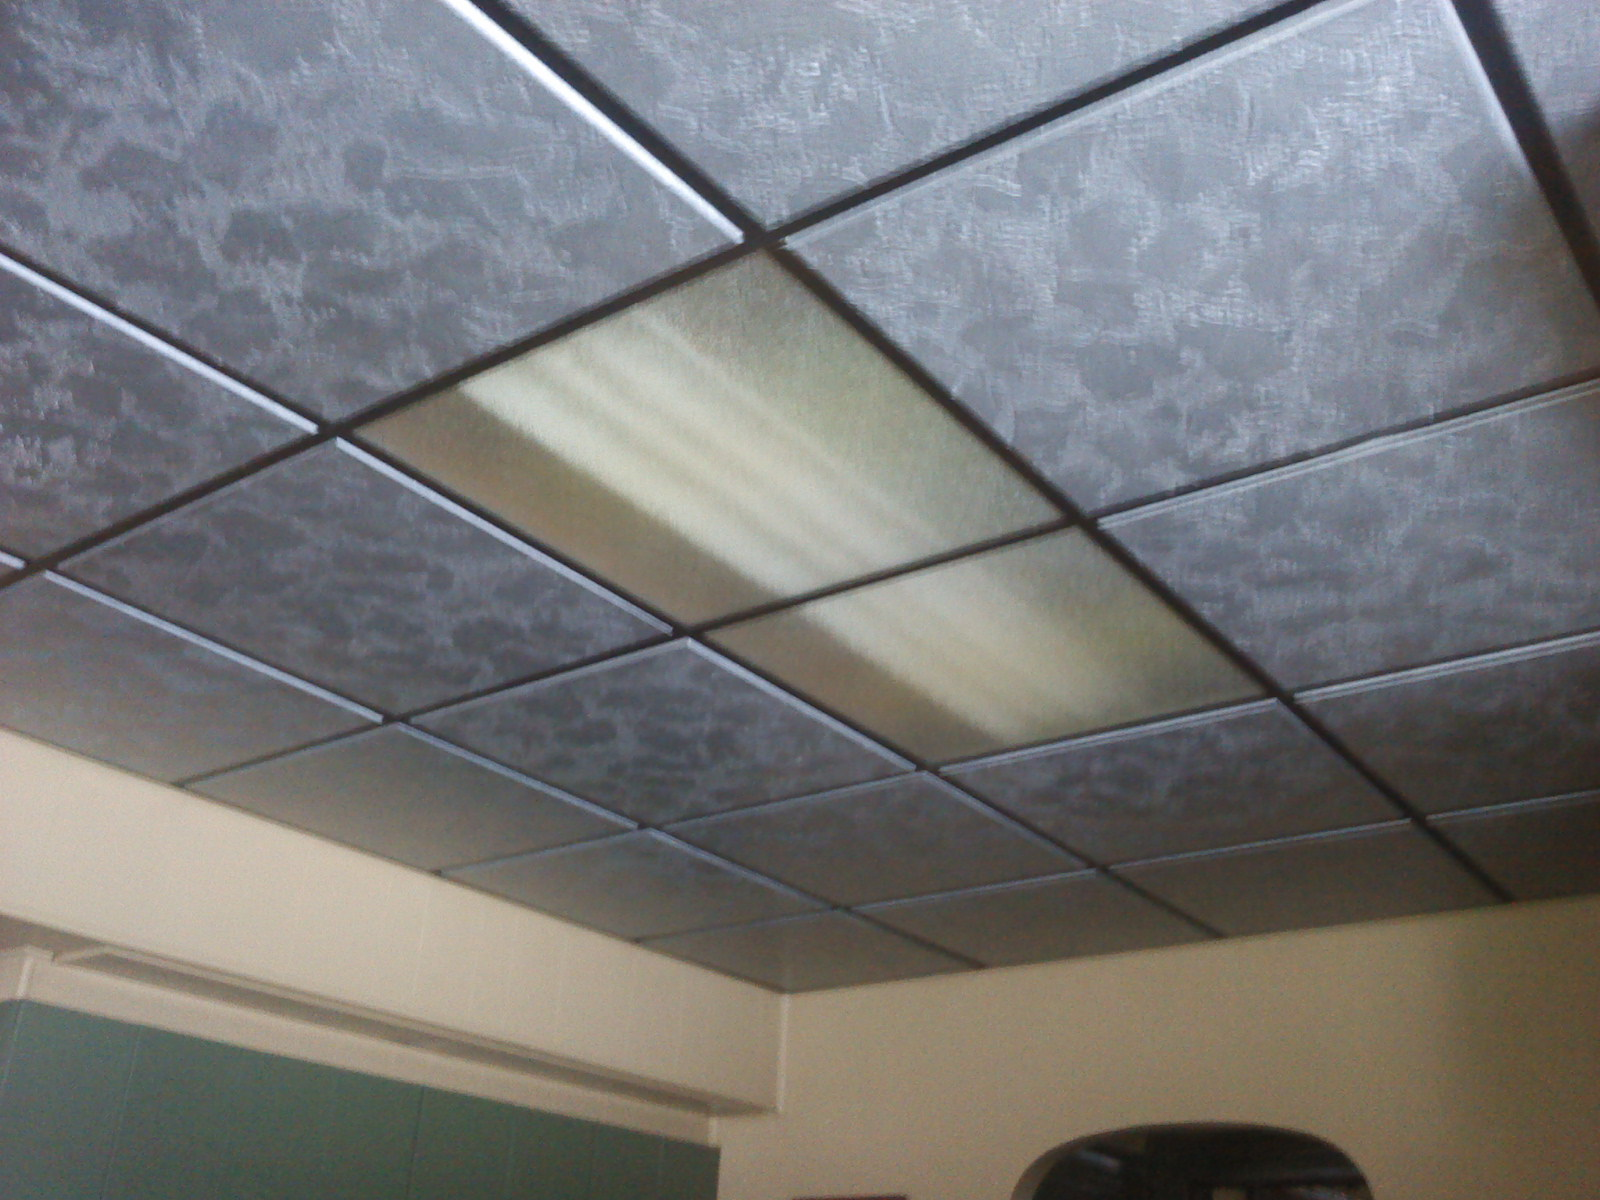 Painted drop ceiling tiles